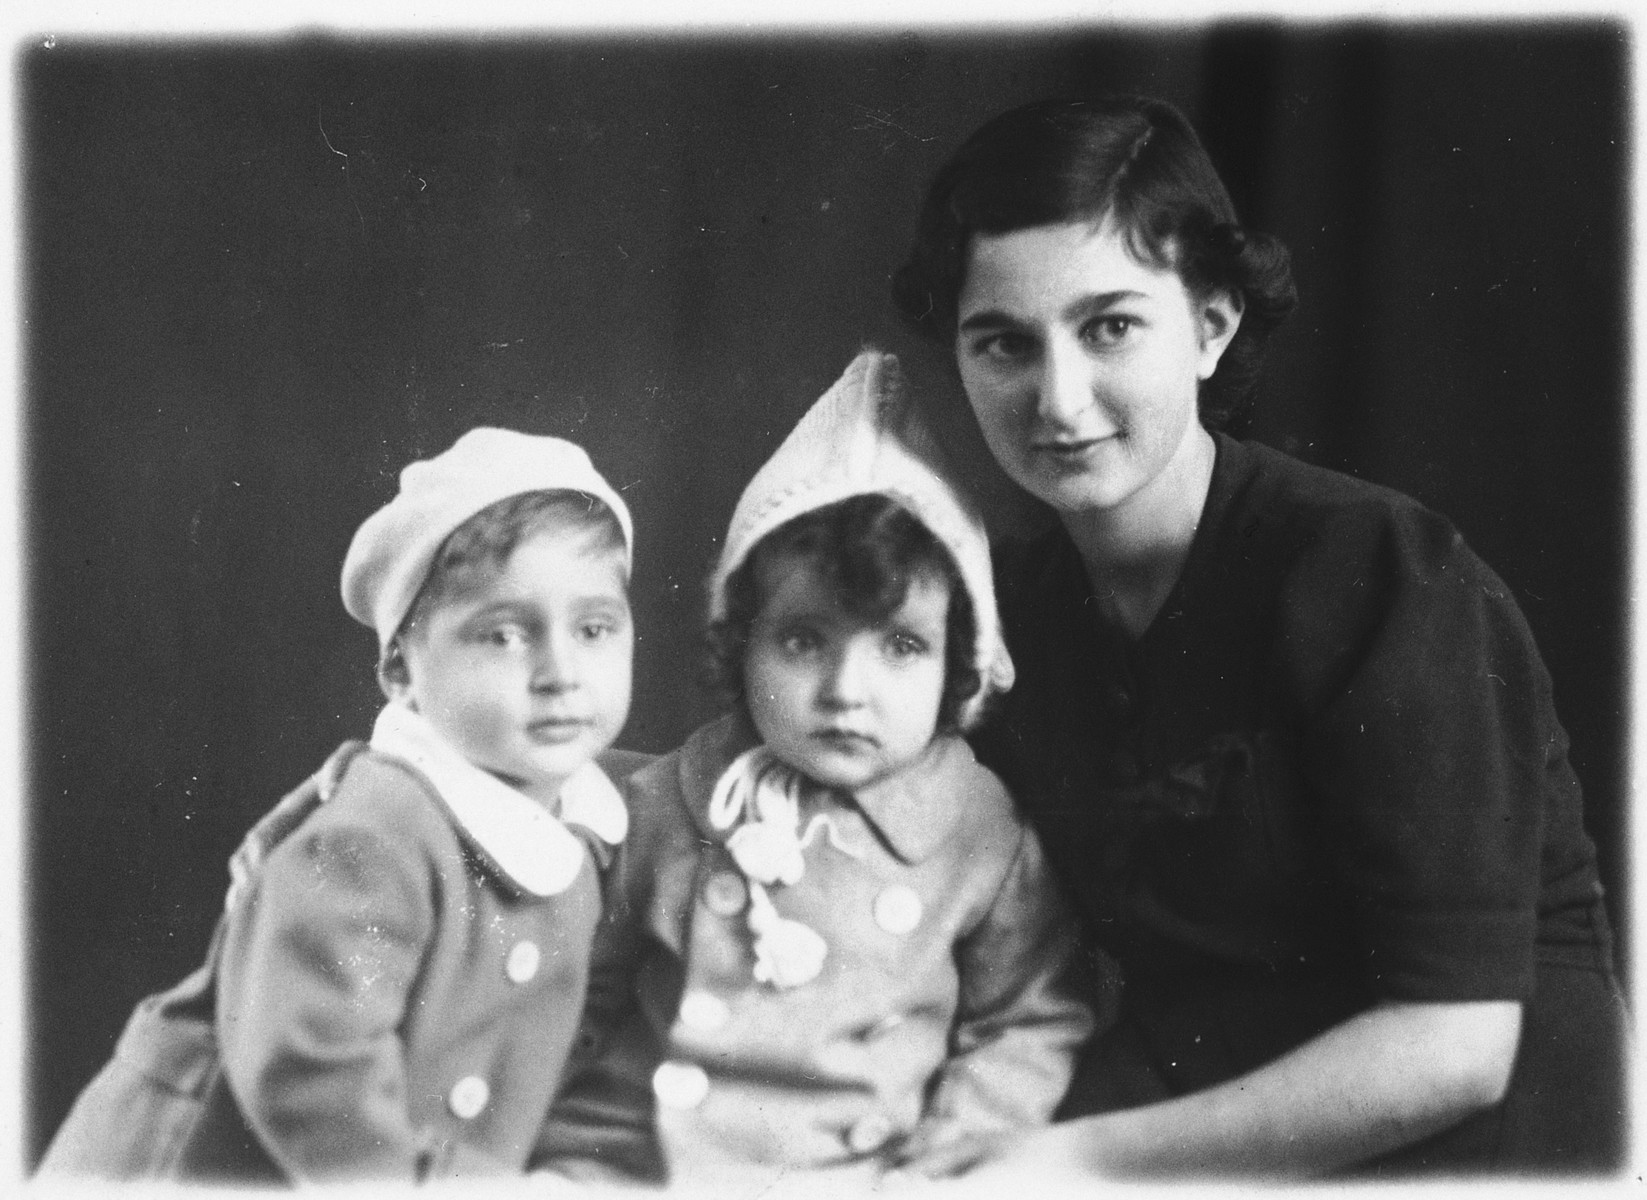 Studio portrait of a Jewish woman with two of her children.  Pictured are Mathilde Hirsch and her two youngest children, Werner and Rosalene.